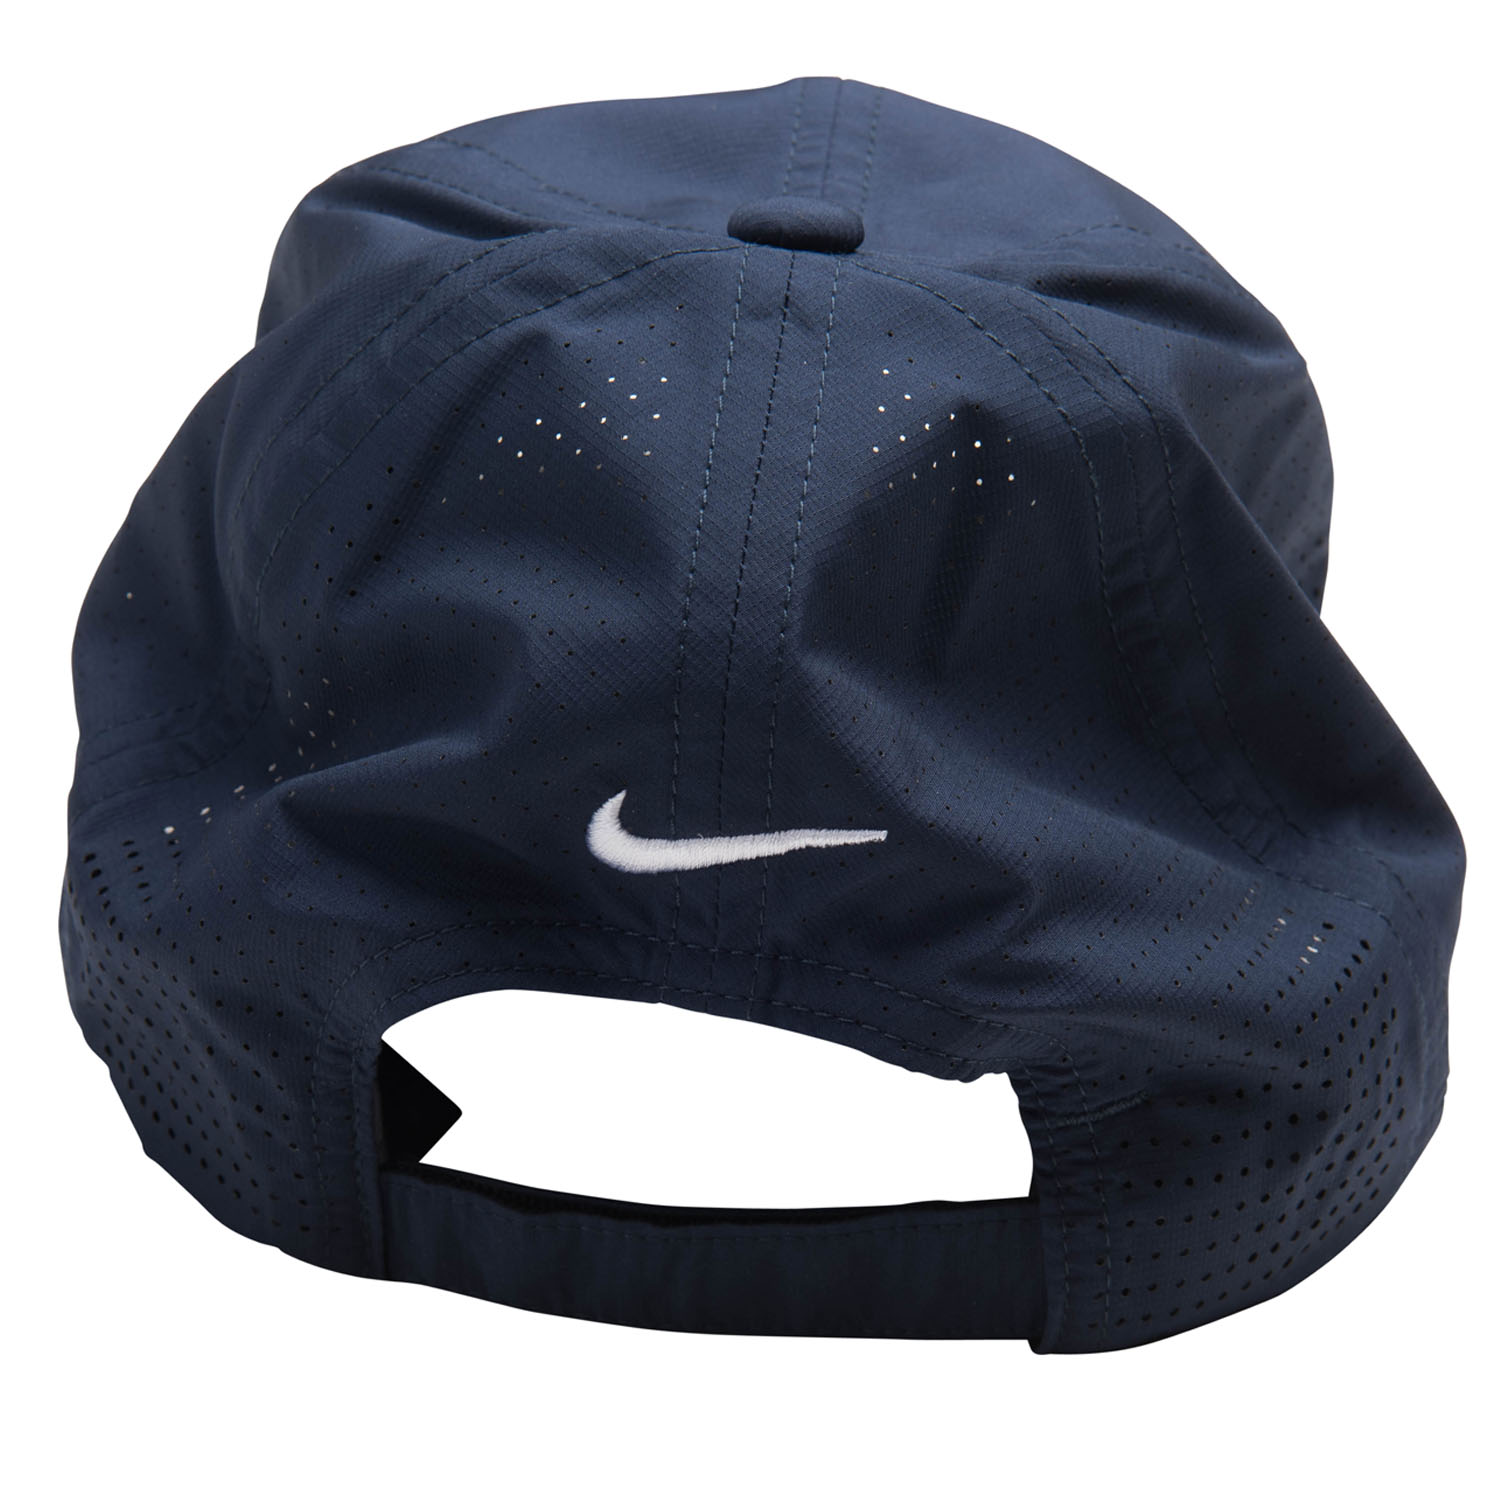 Men S Nike Golf Hat Mhq. Nike Hat Black. Nike Dri Fit Solid Tennis Cap. Nike  Dri Fit Solid Tennis Cap Black 828ae3c63ae9